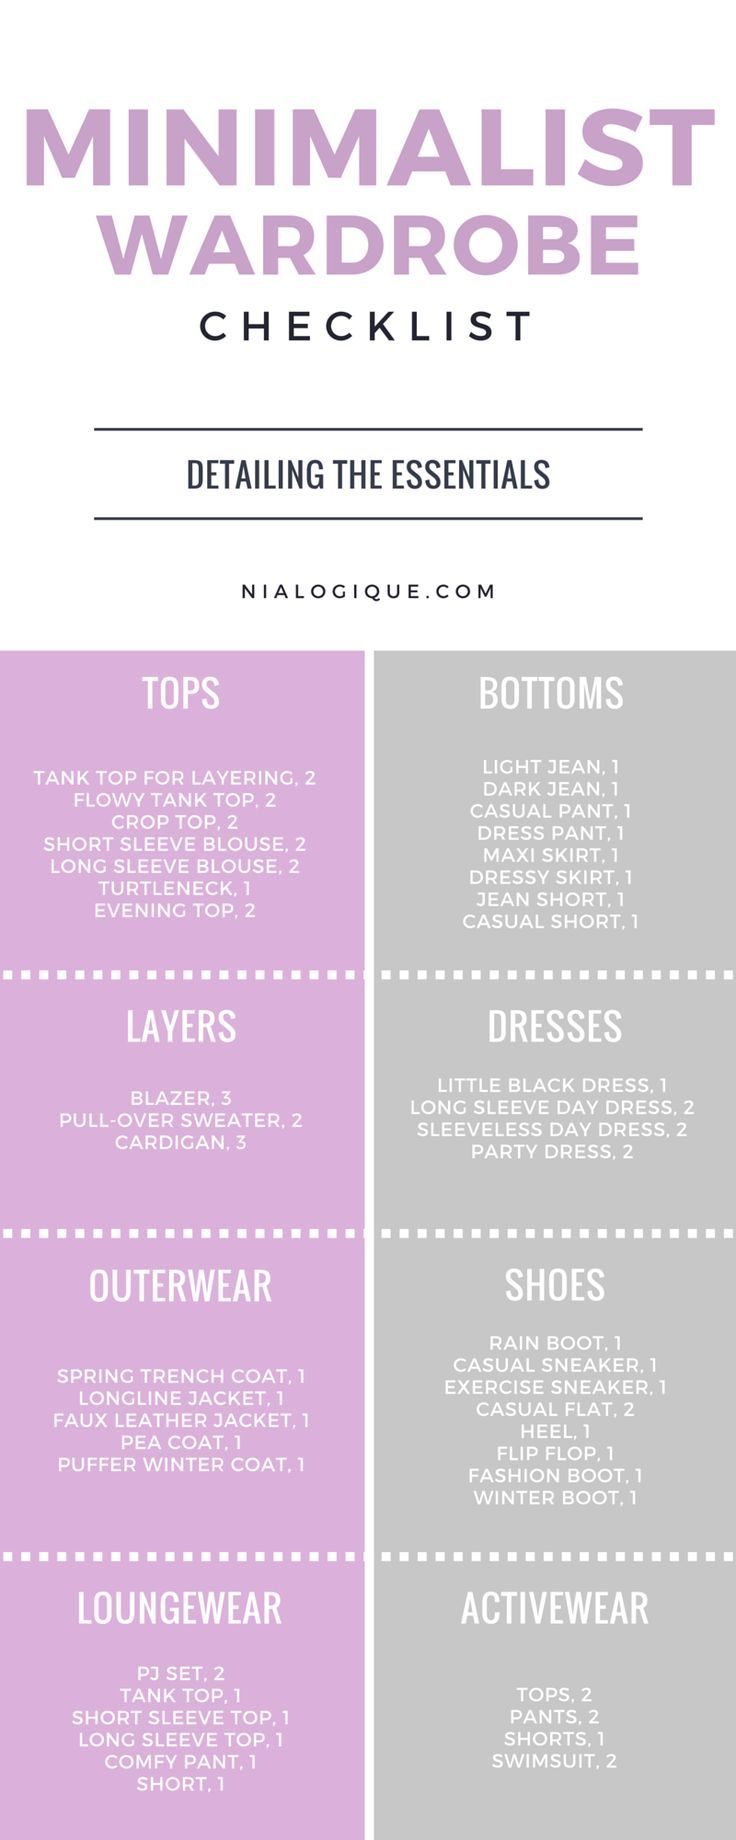 25 best ideas about minimalist wardrobe on pinterest for Minimalist living pinterest